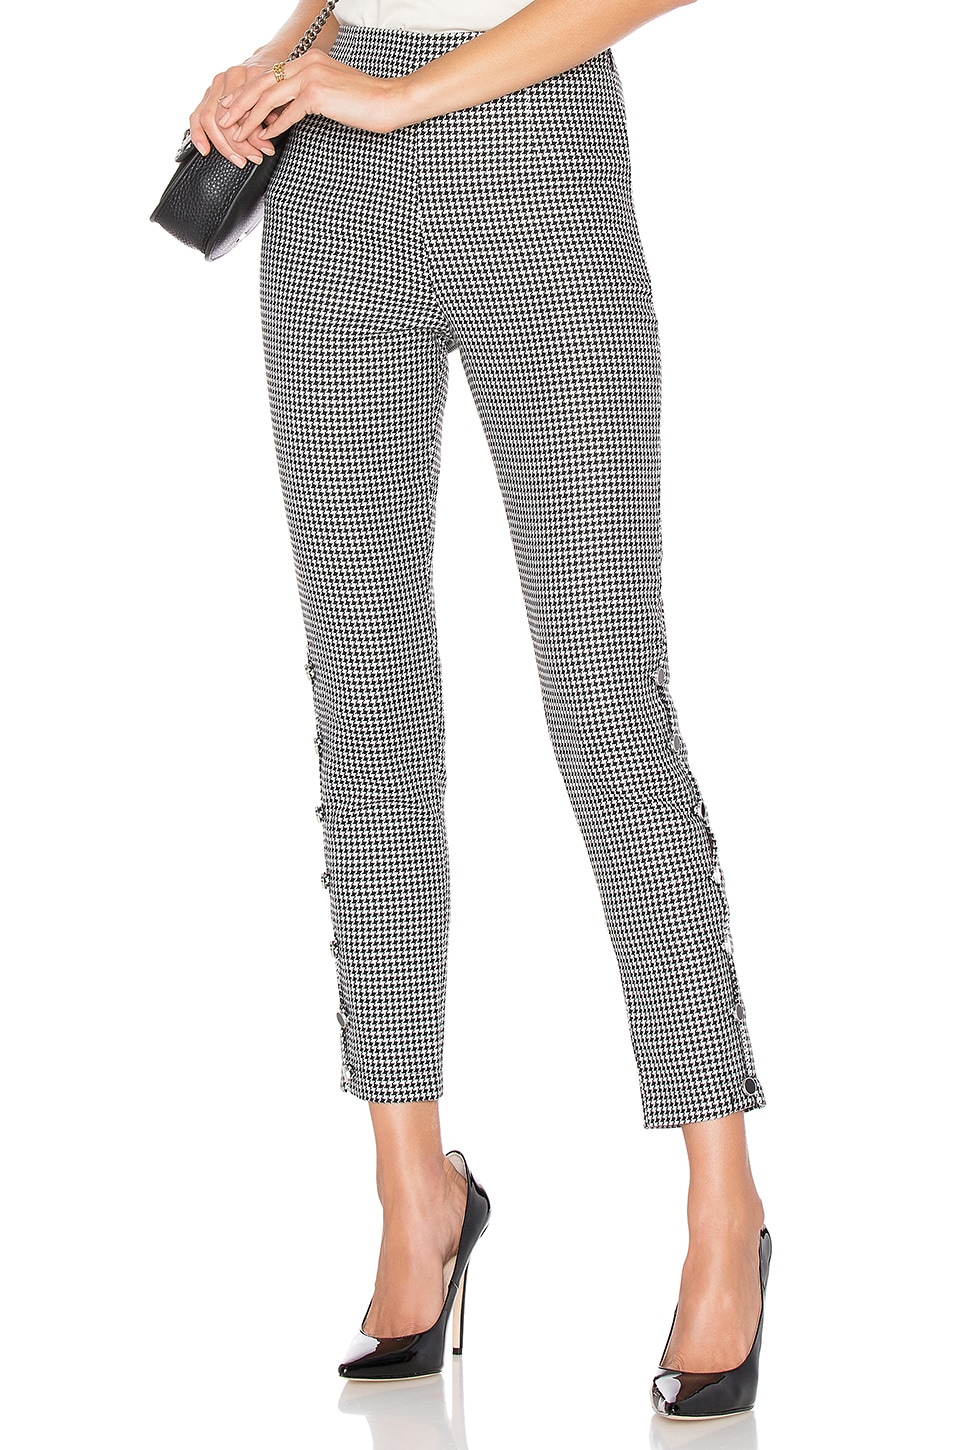 Lovers + Friends Allegro Pant in Sparkly Houndstooth